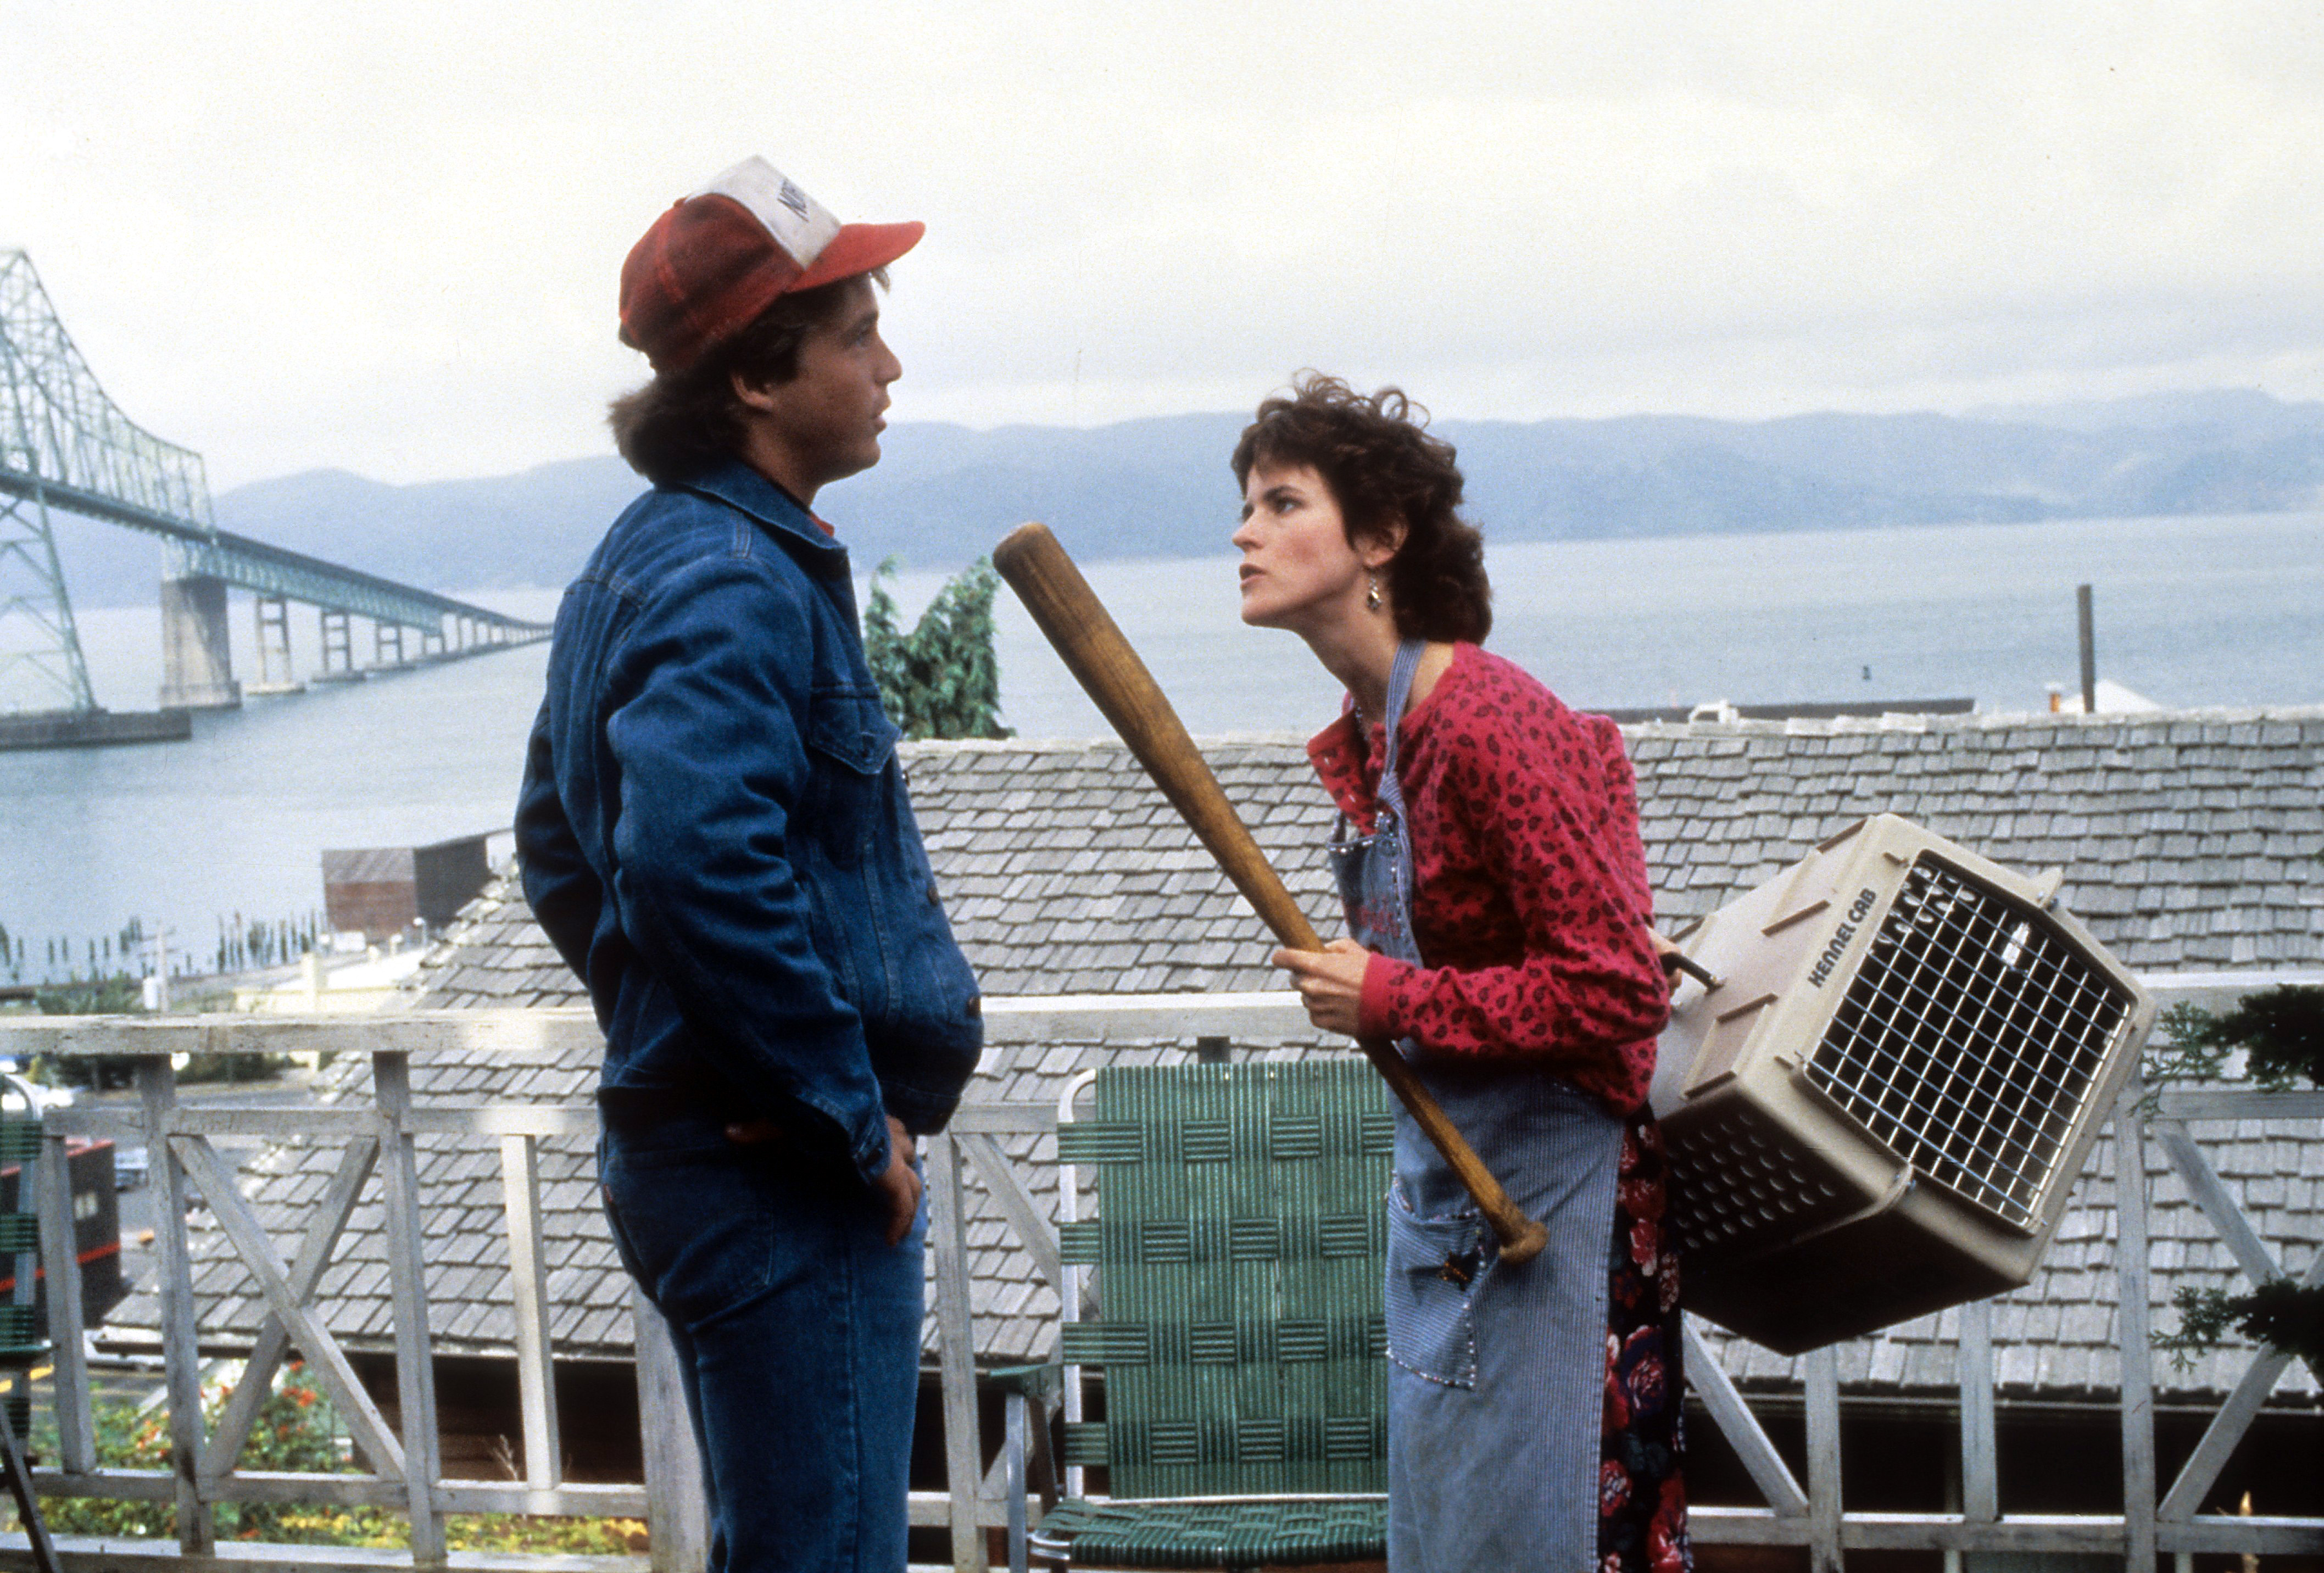 Ally Sheedy and Brian McNamara in Short Circuit (1986)